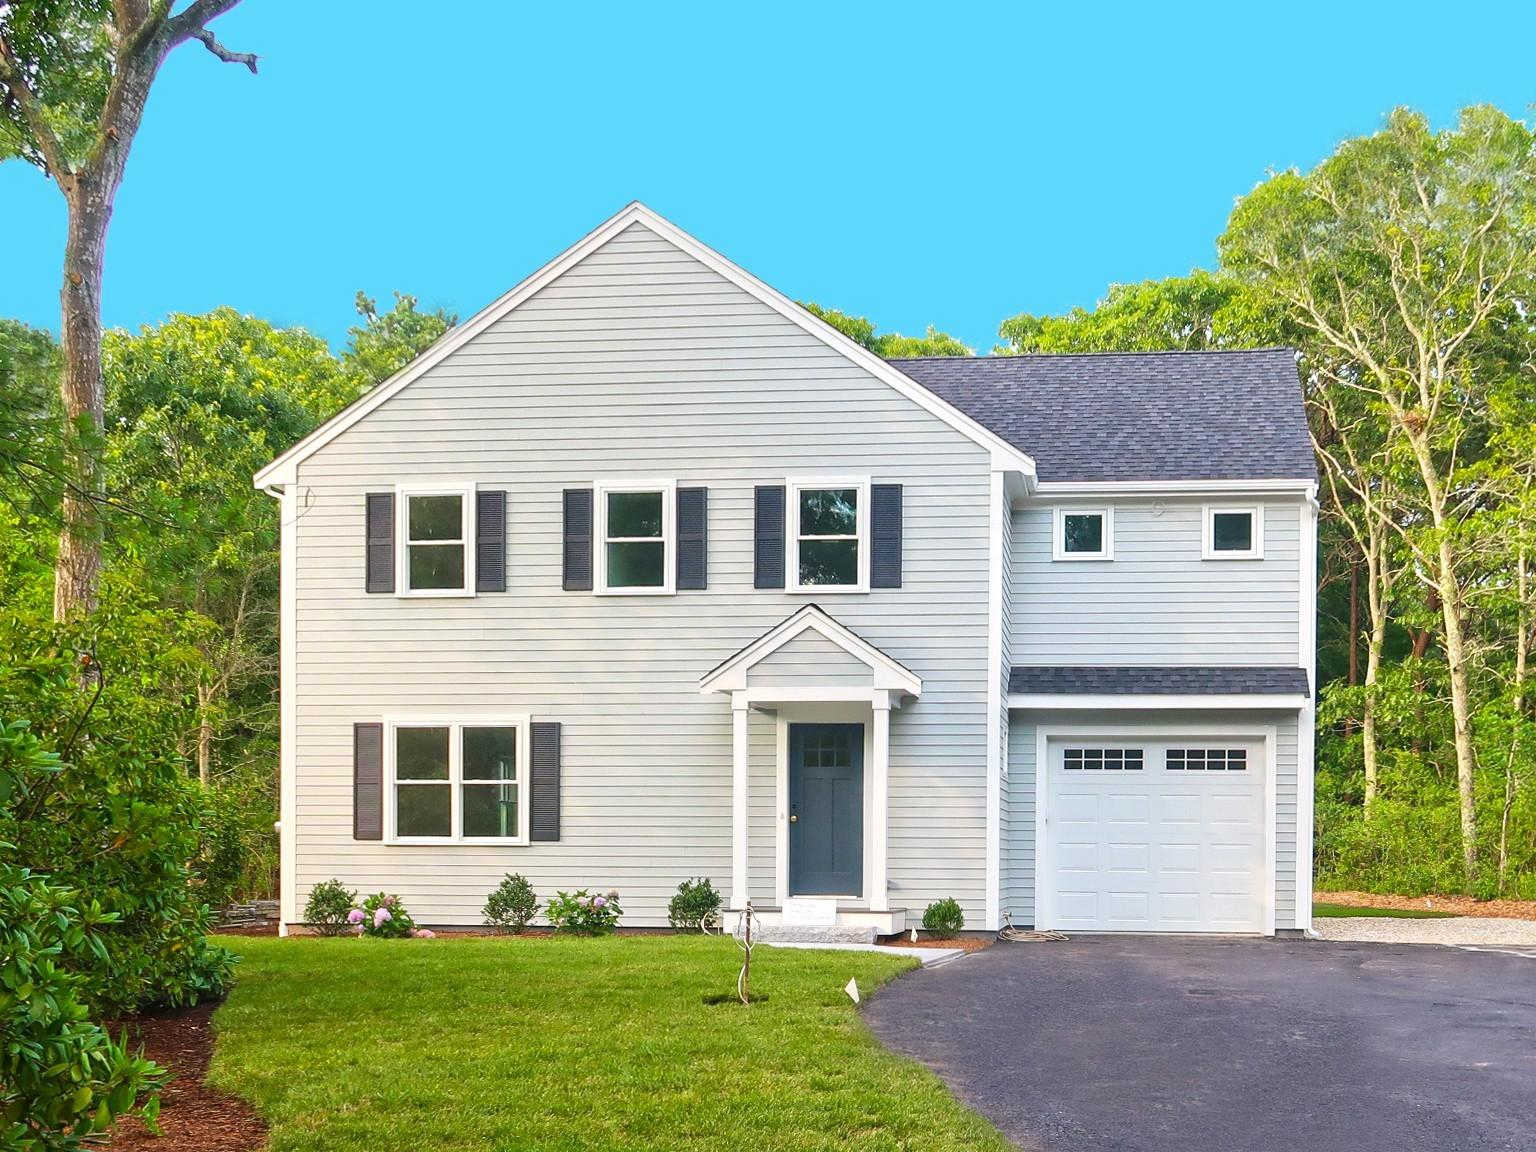 40 Gage Drive, East Falmouth, MA 02536 now has a new price of $549,000!